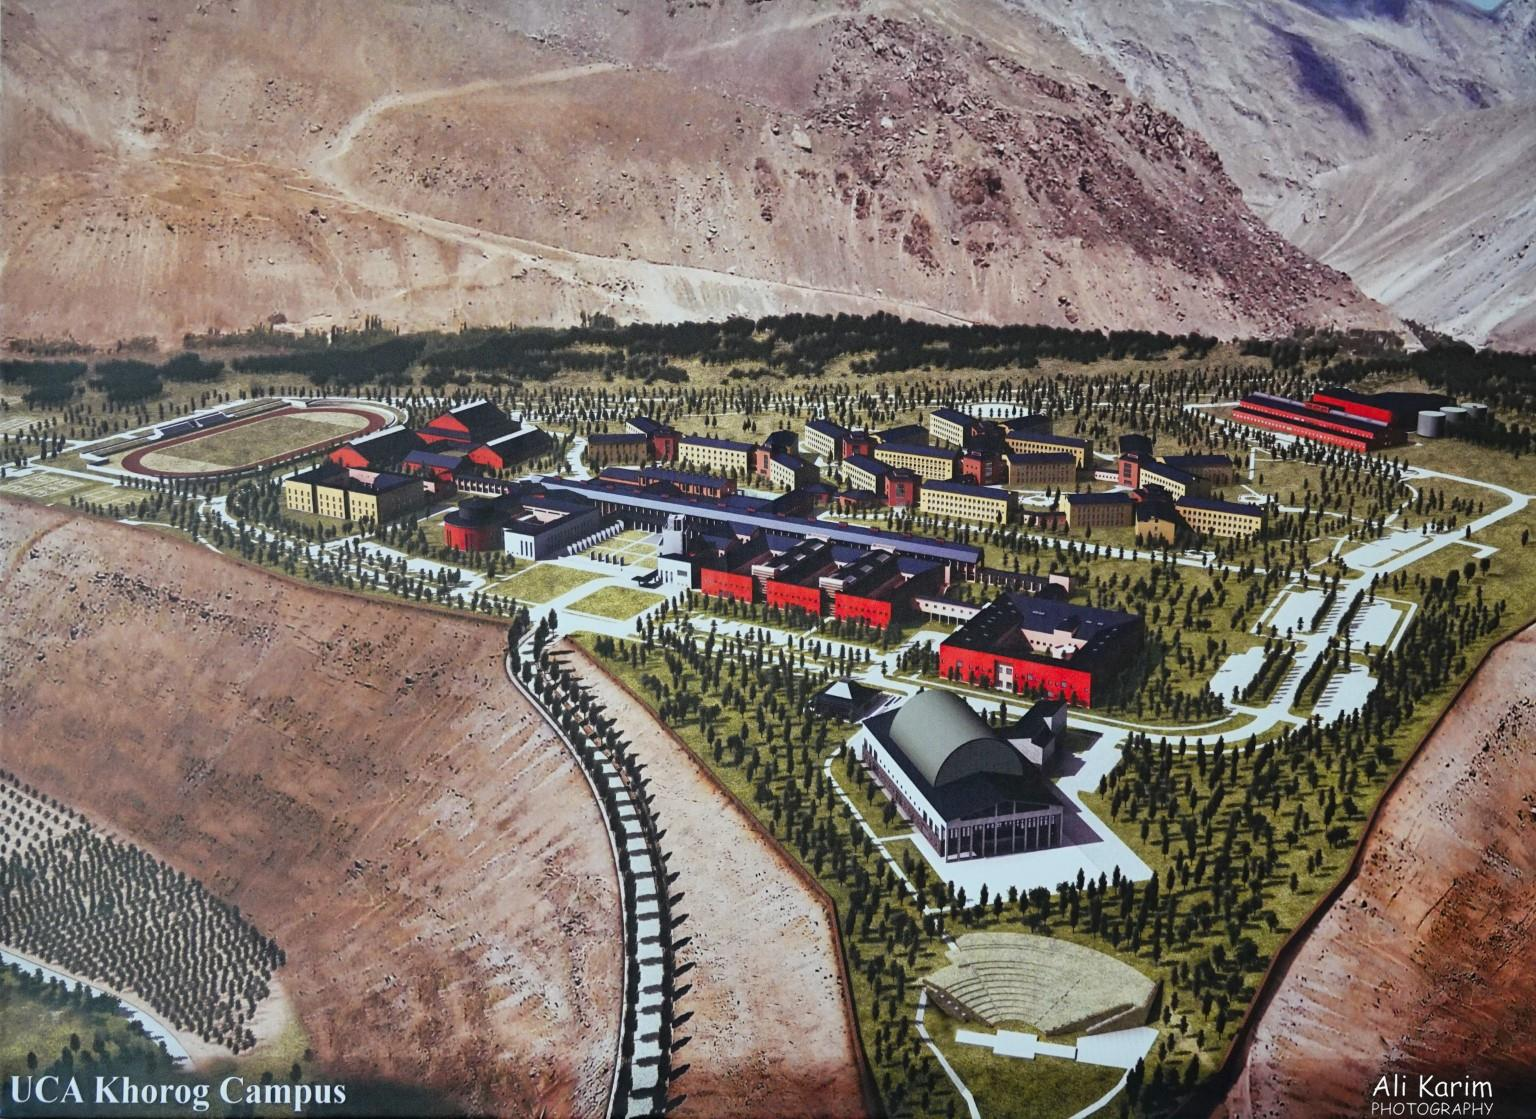 More Khorog, Tajikistan Renderings of plans of the University of Central Asia Khorog Campus. Phase 1 includes only those 3-4 buildings on the far left